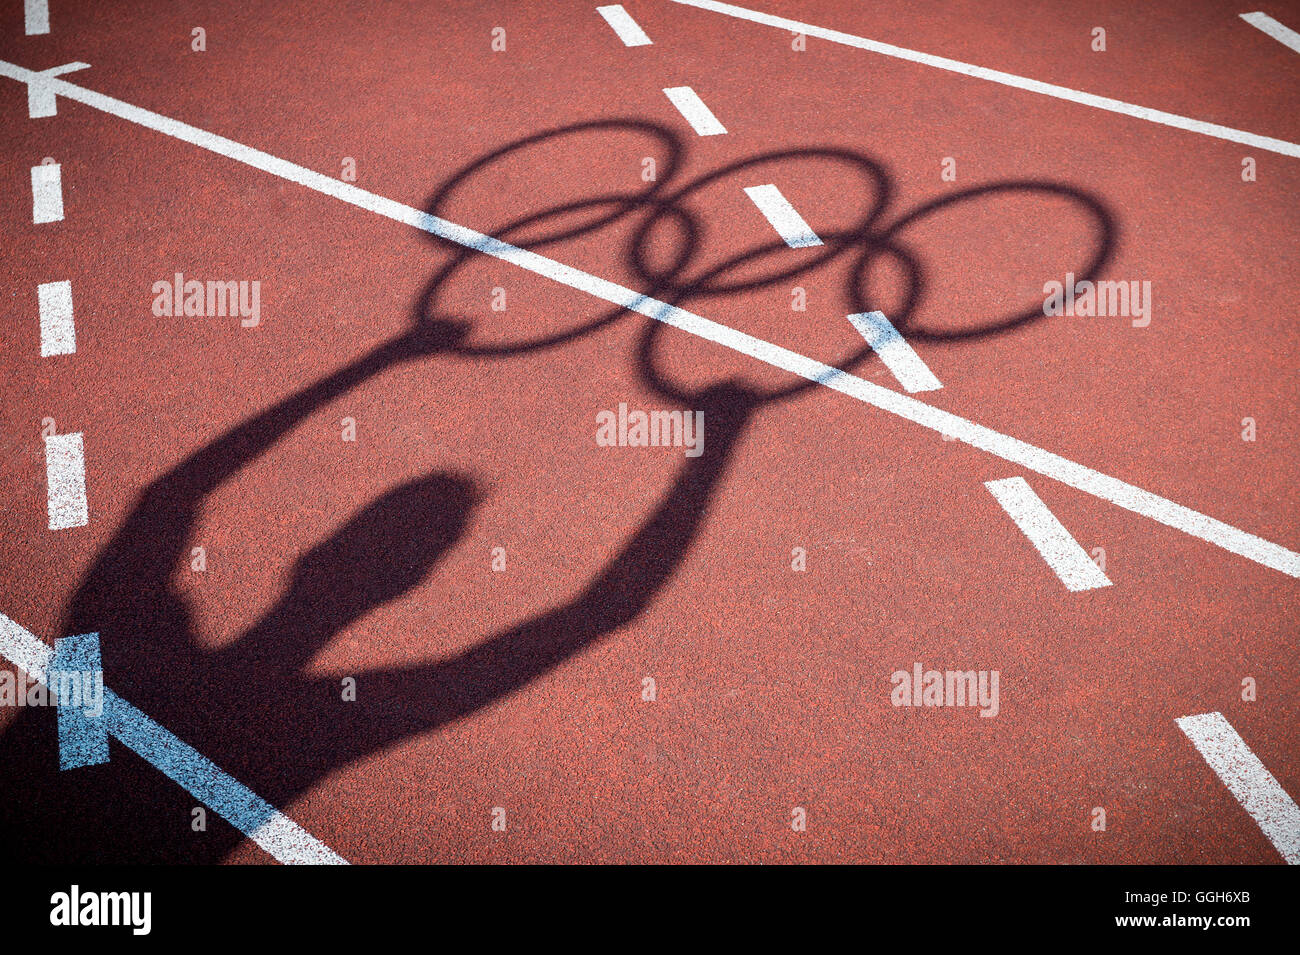 RIO DE JANEIRO - FEBRUARY 12, 2015: Shadow of an athlete holds Olympic rings on the lanes of a red running track. Stock Photo